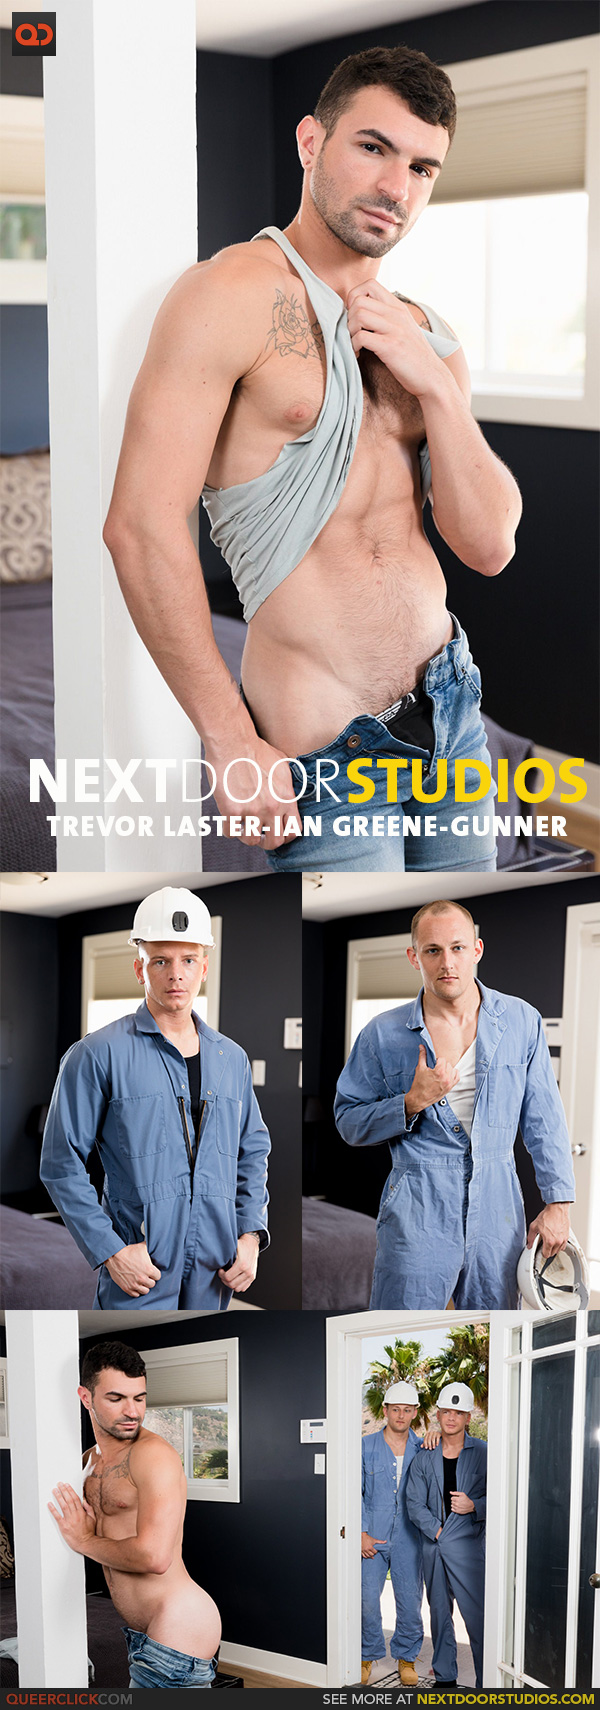 Next Door Studios:  Trevor Laster, Ian Greene and Gunner